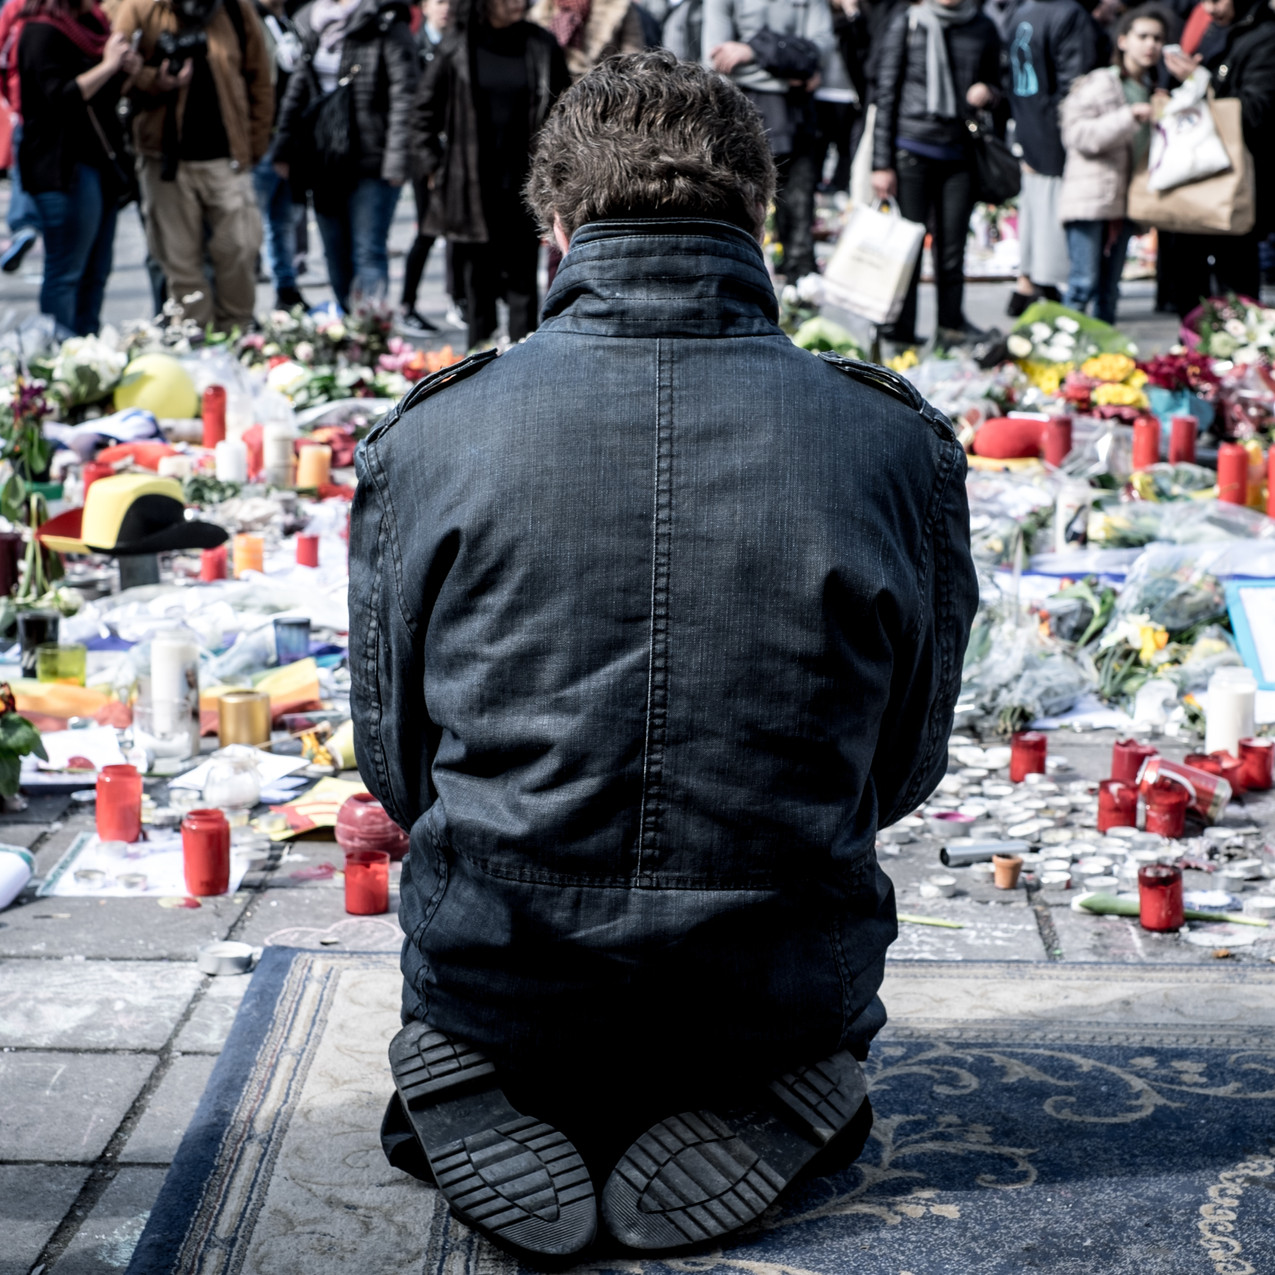 Brussels in mourning